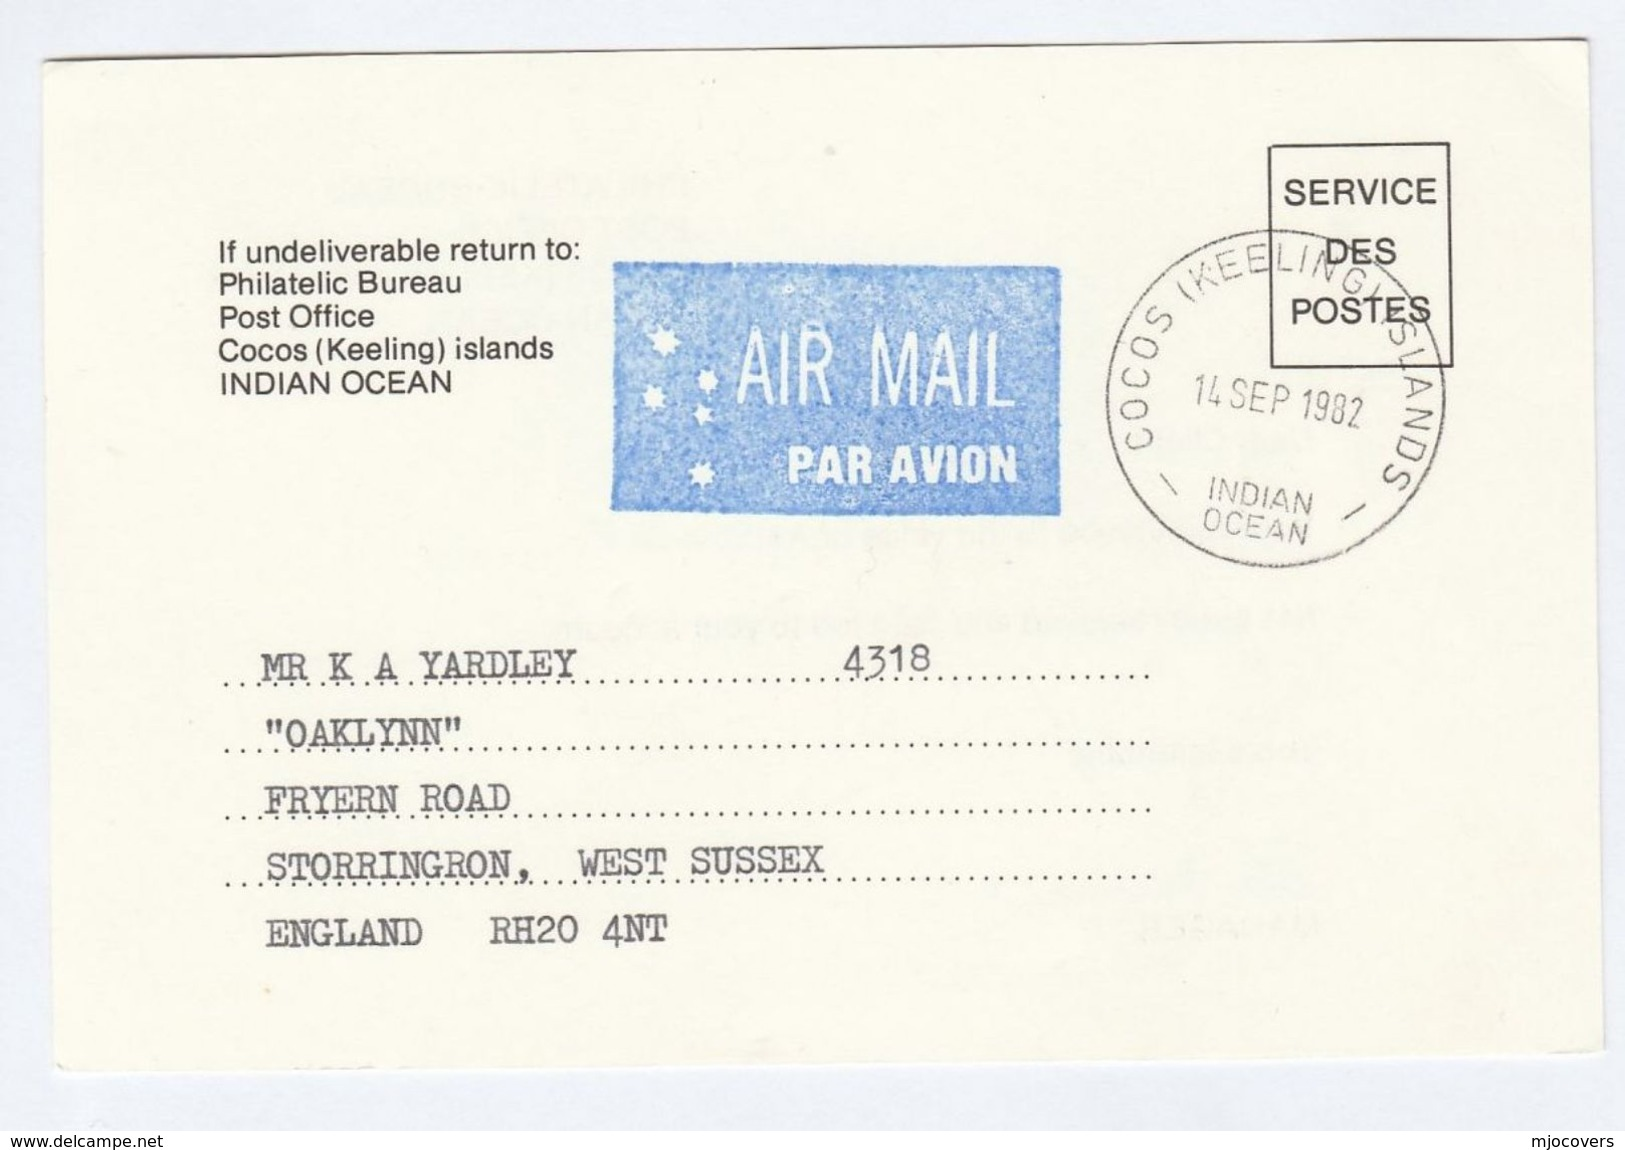 1982 COCOS KEELING Islands SERVICE DES POSTES Postal STATIONERY CARD To GB Cover Stamps - Cocos (Keeling) Islands